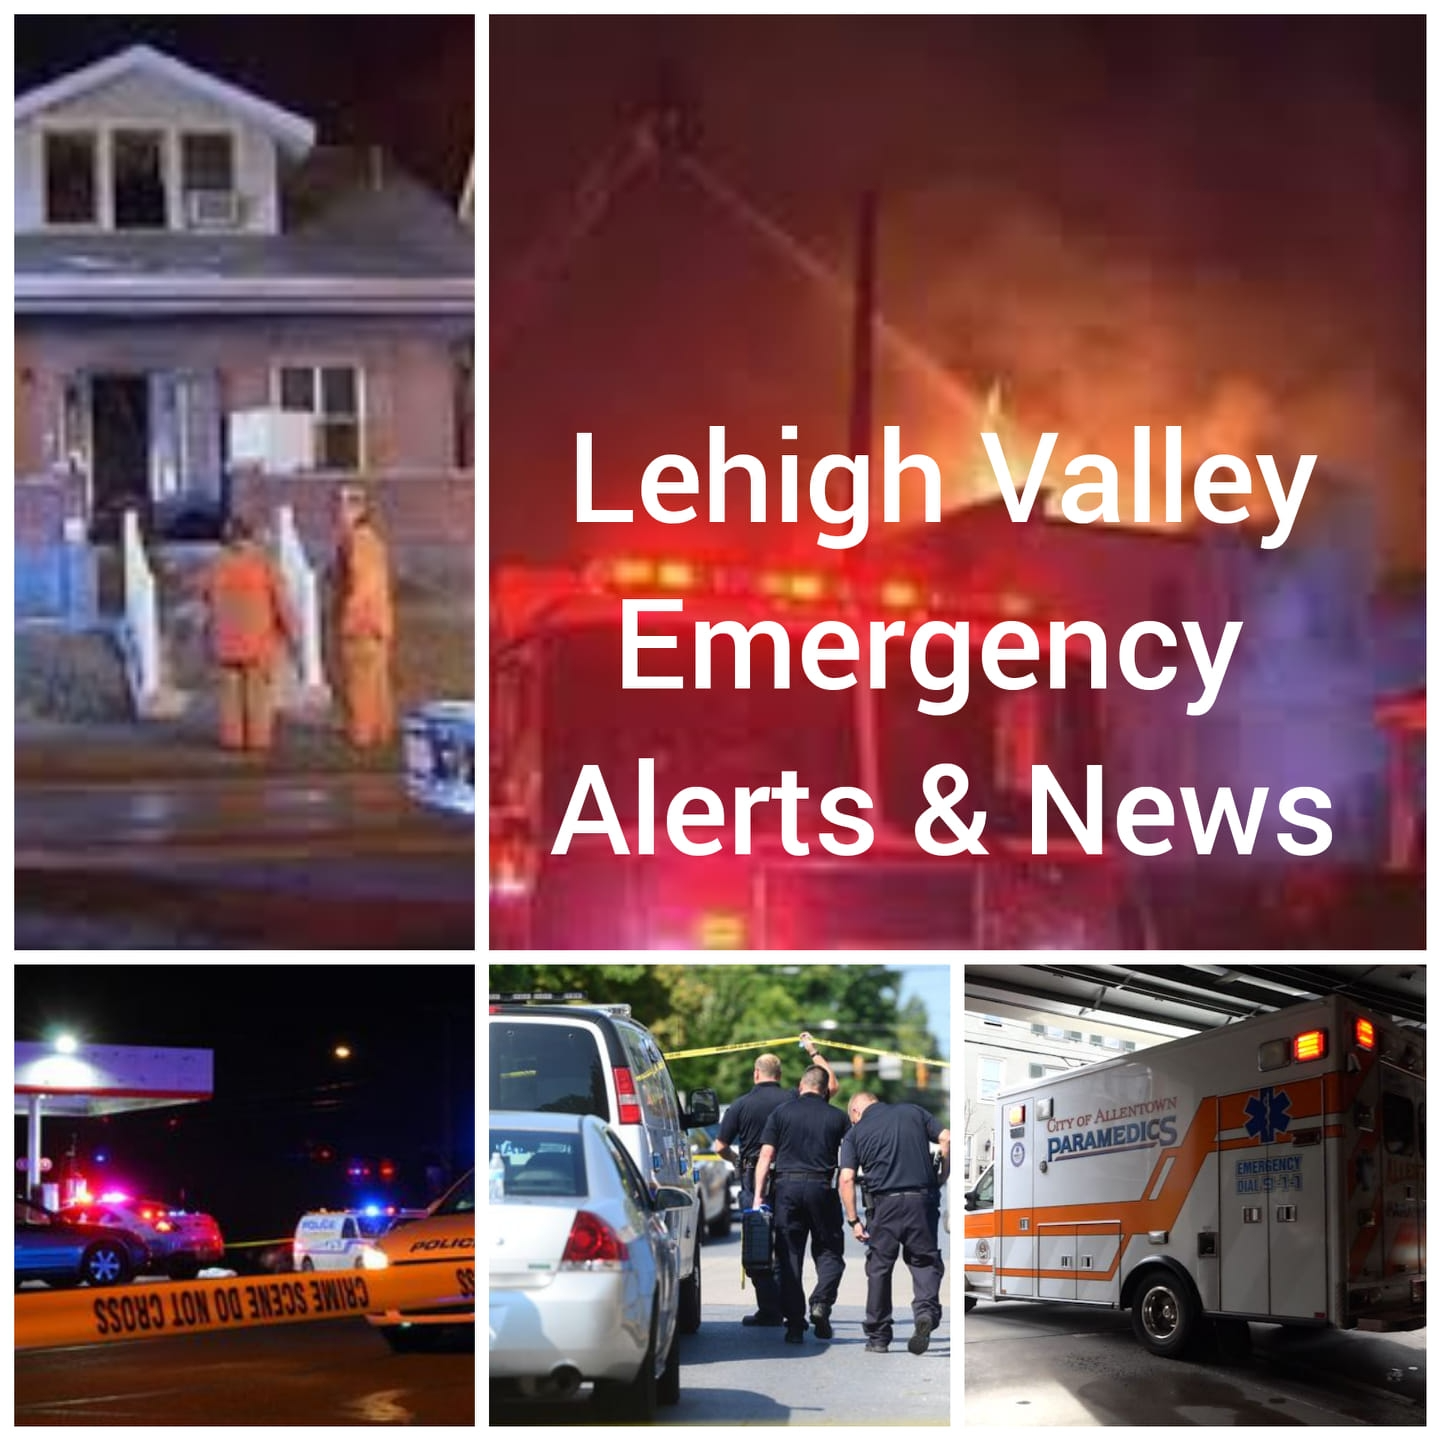 Lehigh Valley Emergency Alerts